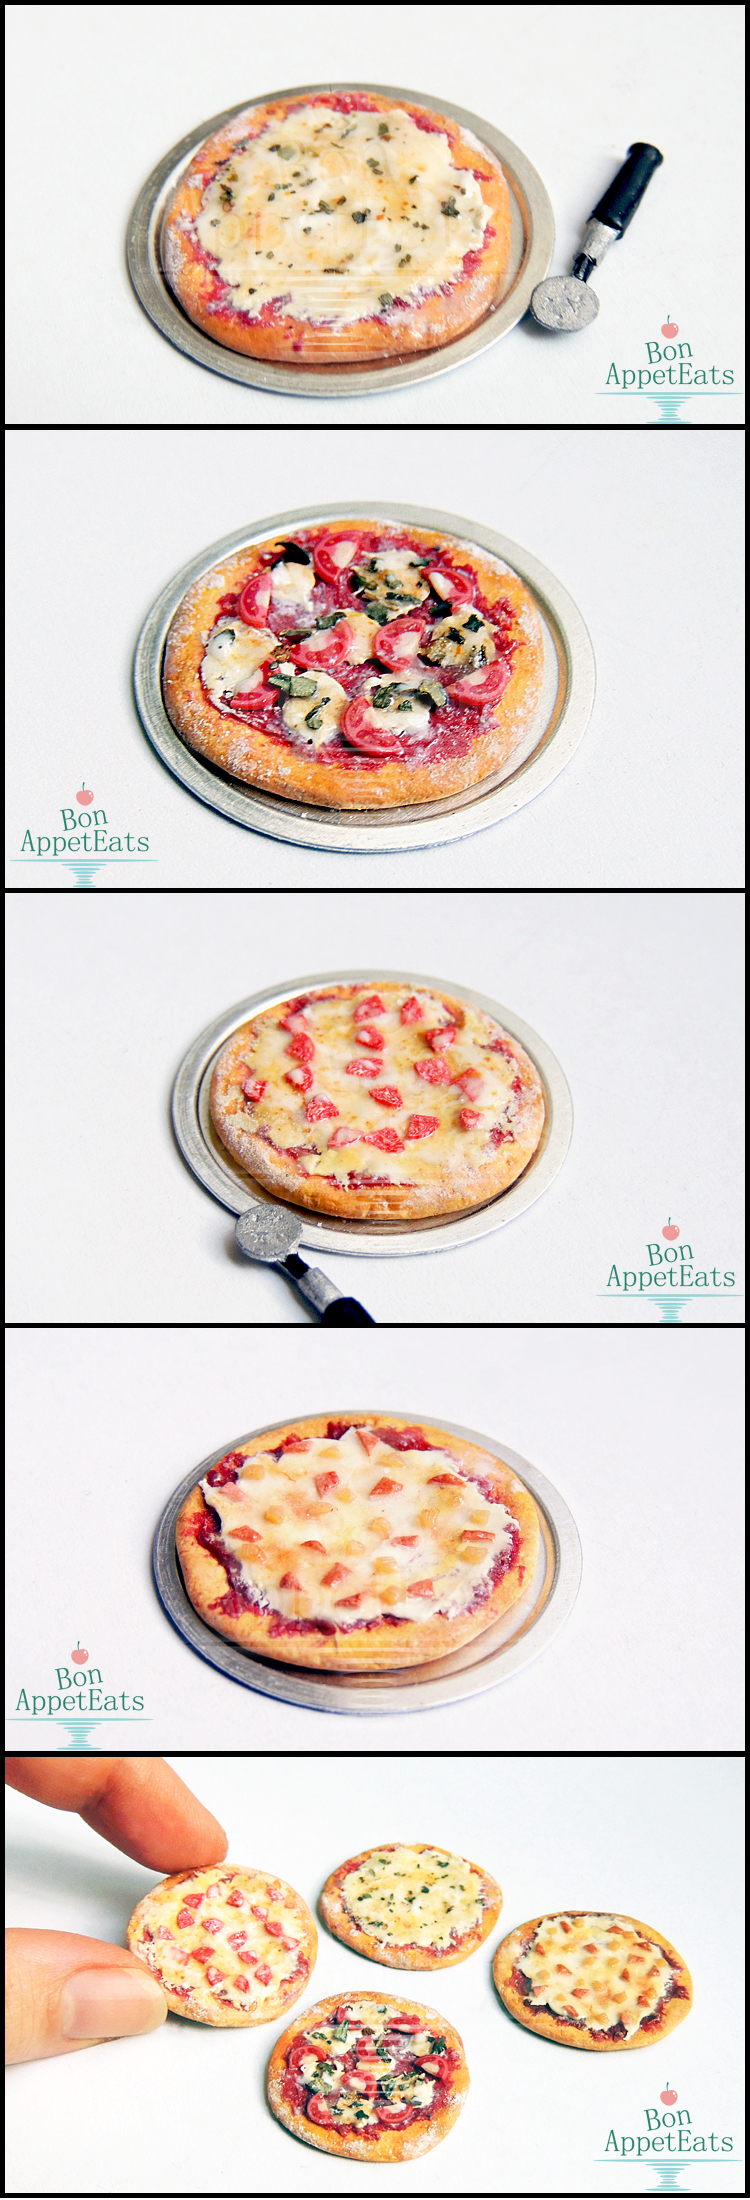 1:12 Pizzas by Bon-AppetEats